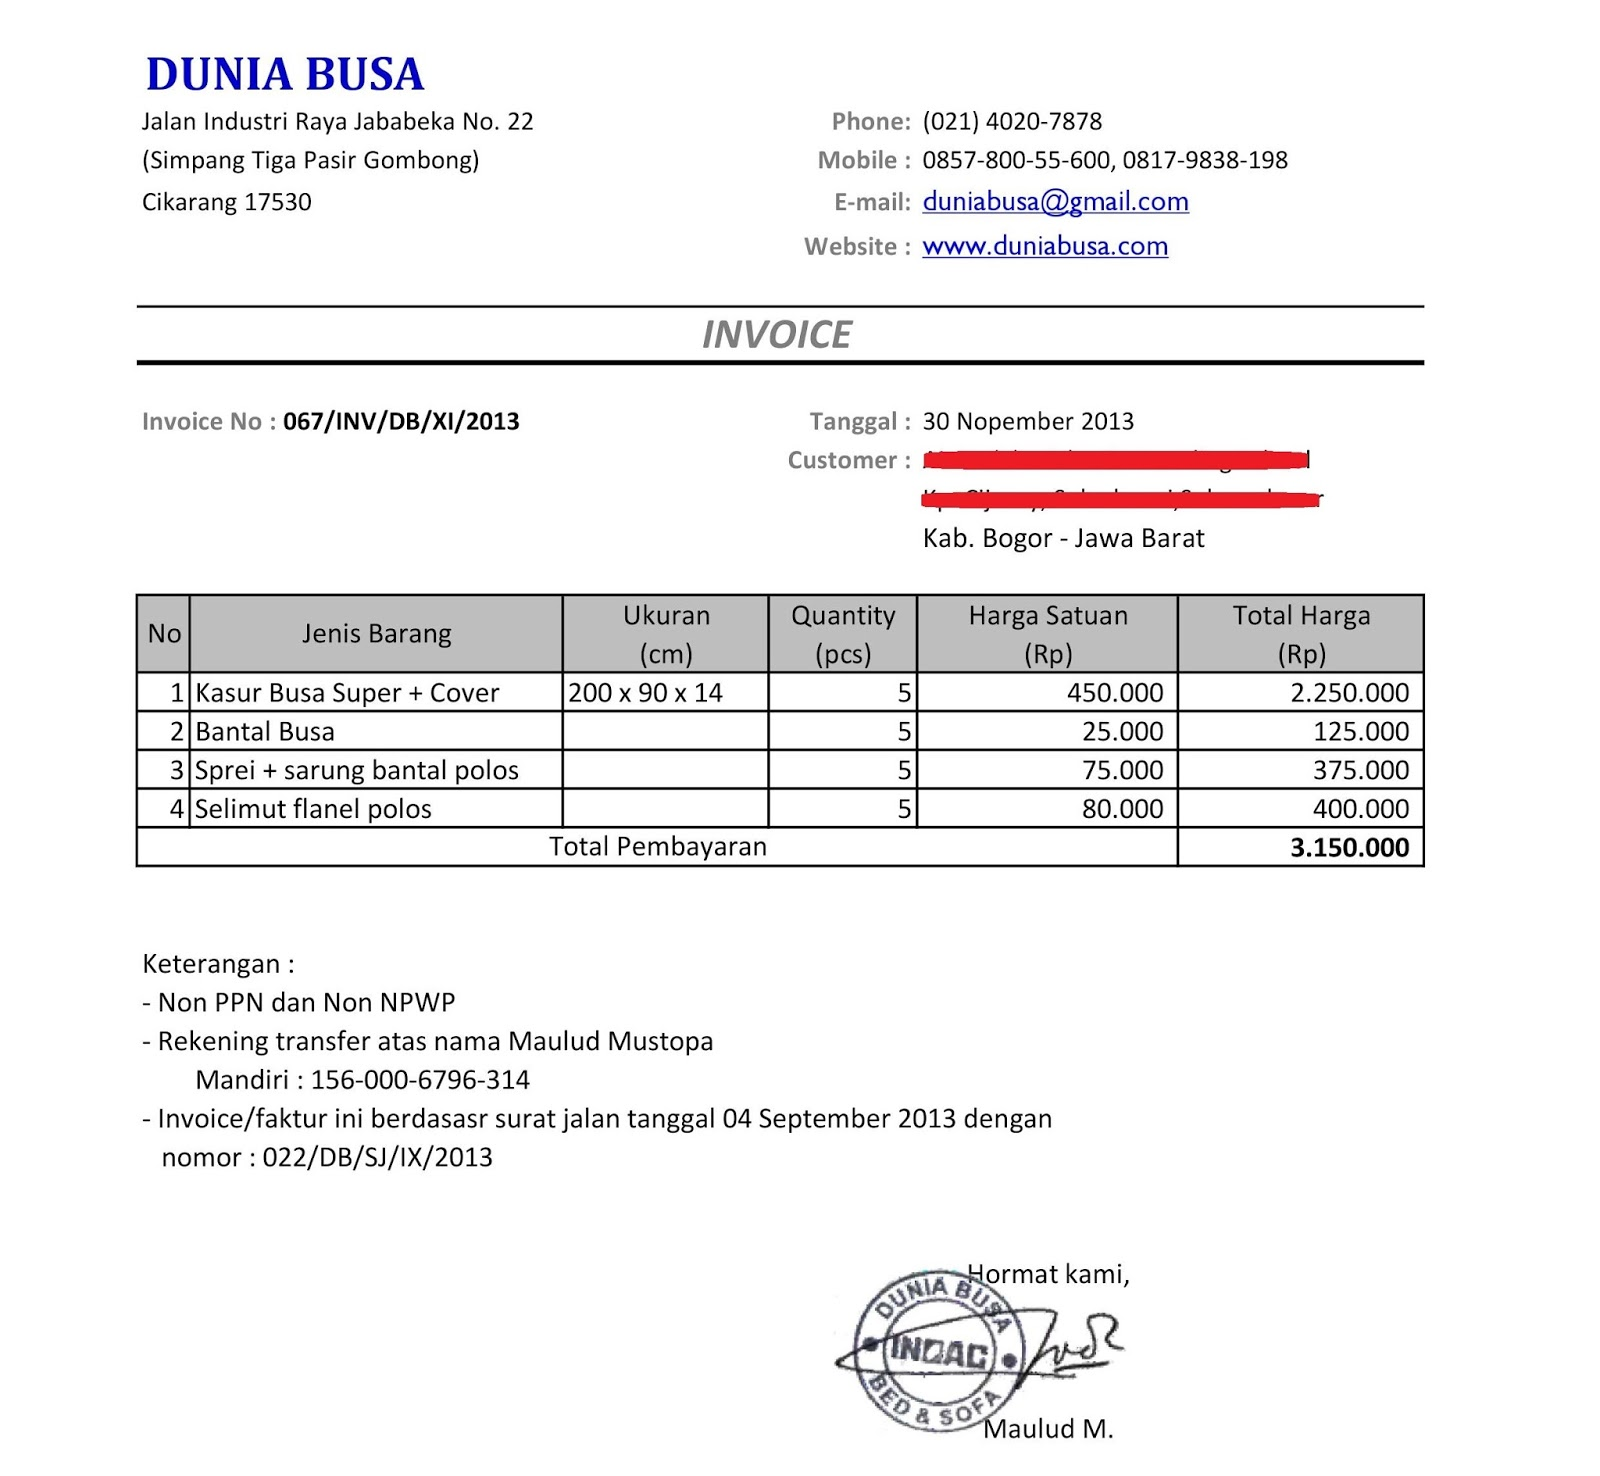 Coachoutletonlineplusus  Pretty Free Invoice Online  Create Invoice Online  Invoice Template  With Interesting Contoh Format Invoice Atau Surat Tagihan  Brankas Arsip  Free Invoice Online With Attractive Receipt For Invoice Also Graphic Design Invoice Template Word In Addition How To Write Payment Terms On Invoice And How To Make A Proper Invoice As Well As How To Send Multiple Invoices In Quickbooks Additionally Pay A Fedex Invoice Online From Sklepco With Coachoutletonlineplusus  Interesting Free Invoice Online  Create Invoice Online  Invoice Template  With Attractive Contoh Format Invoice Atau Surat Tagihan  Brankas Arsip  Free Invoice Online And Pretty Receipt For Invoice Also Graphic Design Invoice Template Word In Addition How To Write Payment Terms On Invoice From Sklepco